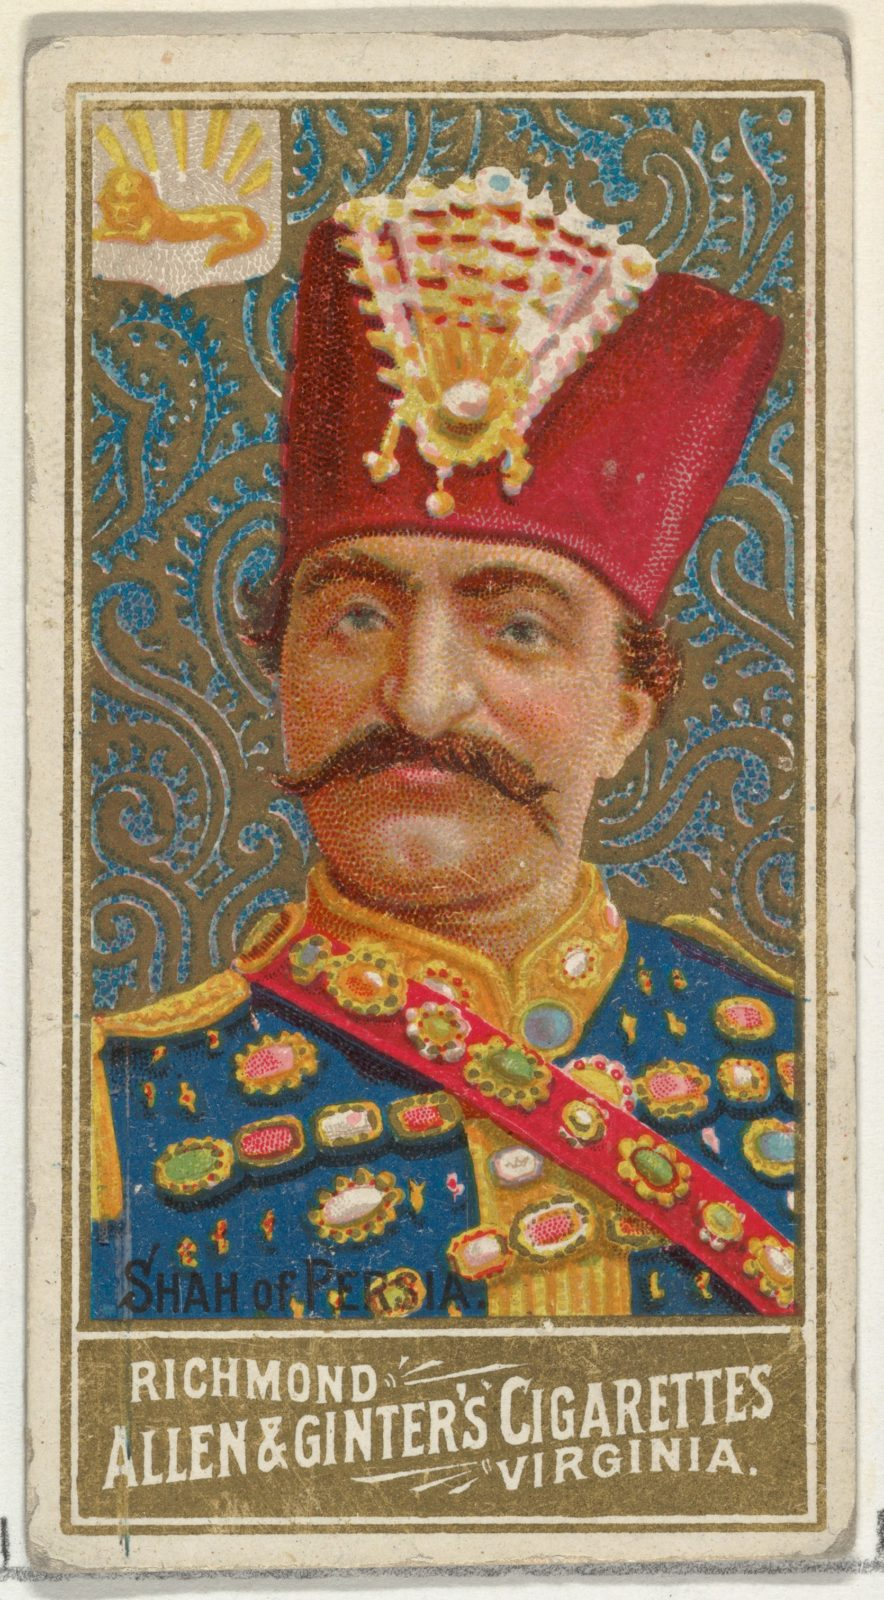 Shah of Persia, from World's Sovereigns series (N34) for Allen & Ginter Cigarettes